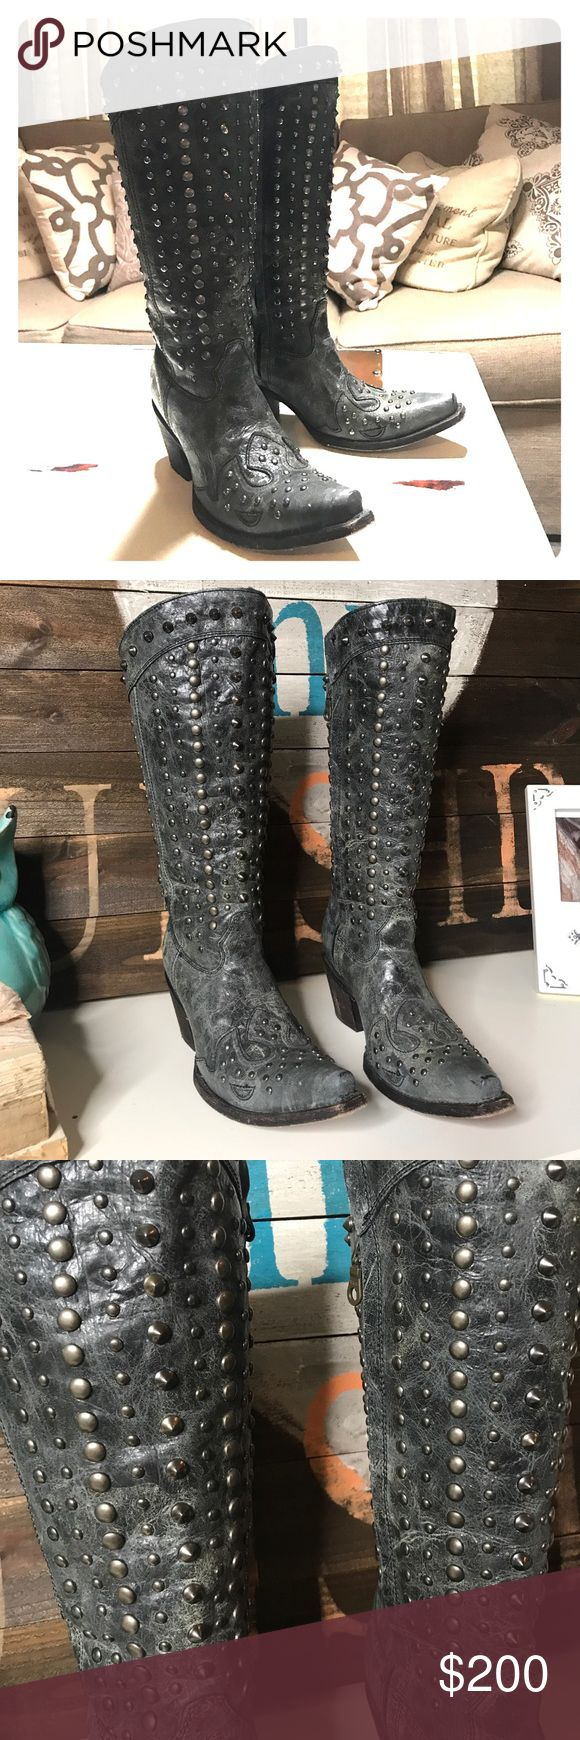 Corral vintage boots Stuffed boots Shoes Heeled Boots